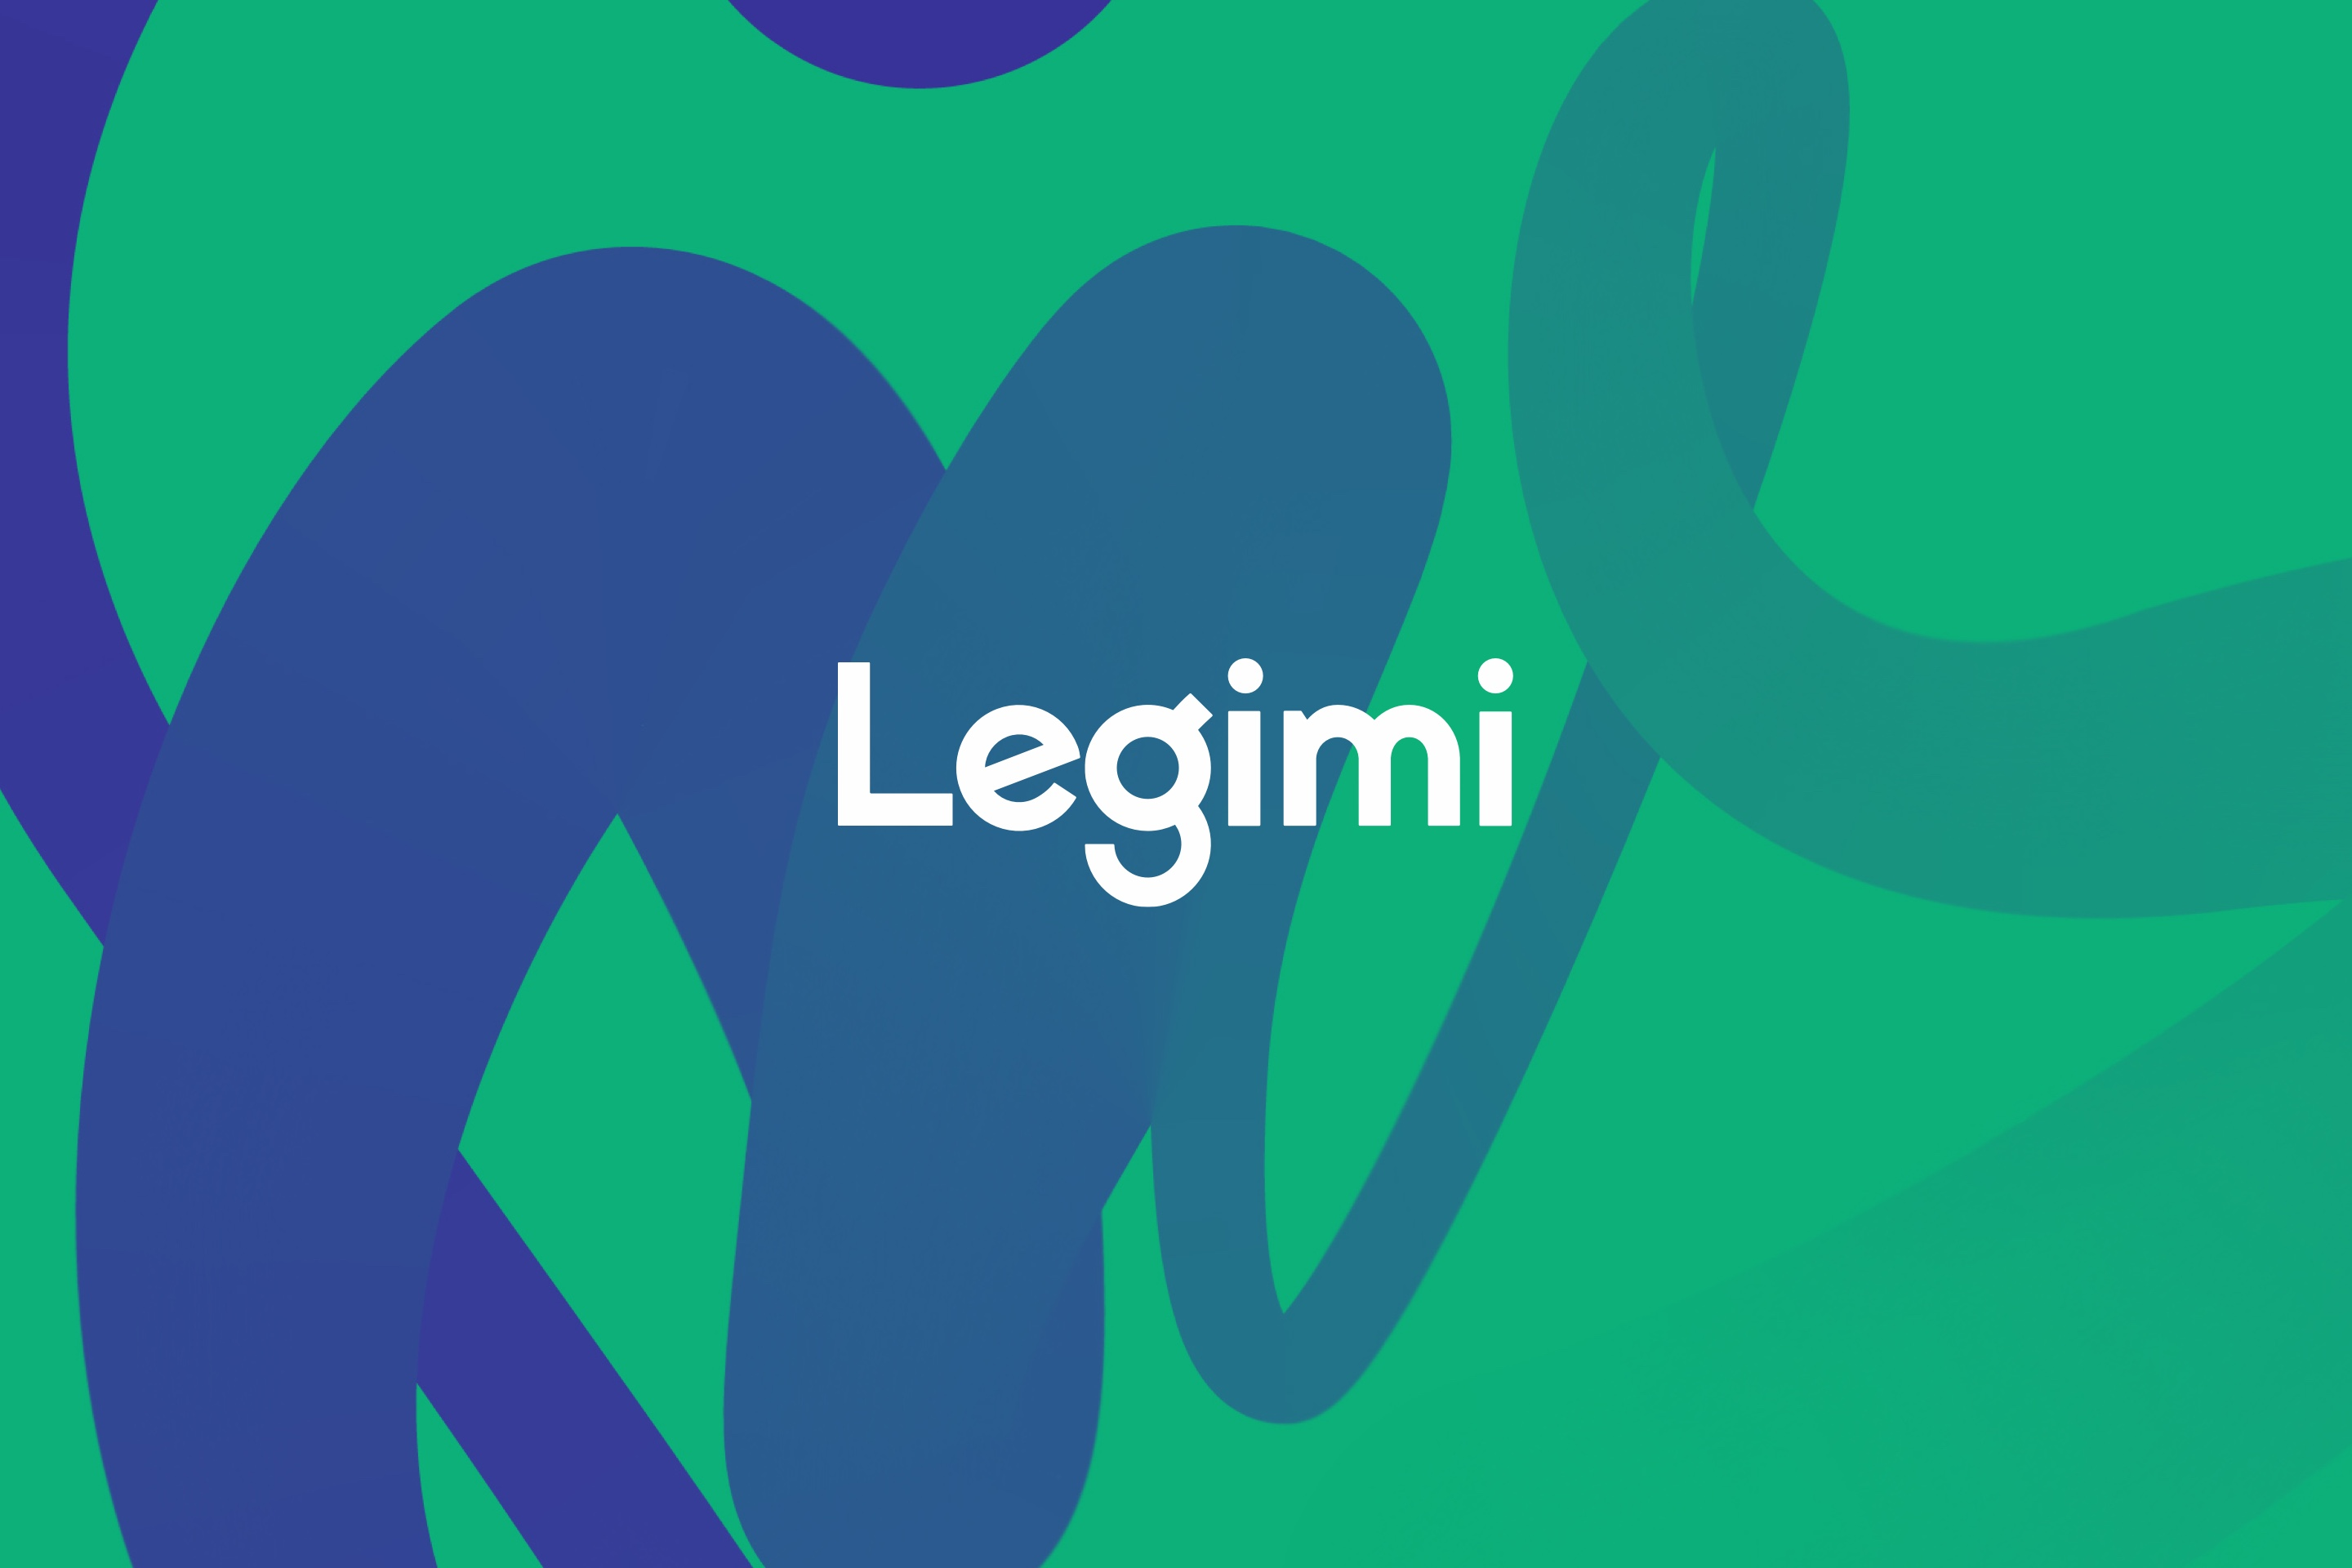 Brand logo - green and blue pattern in the background - Legimi by Uniforma